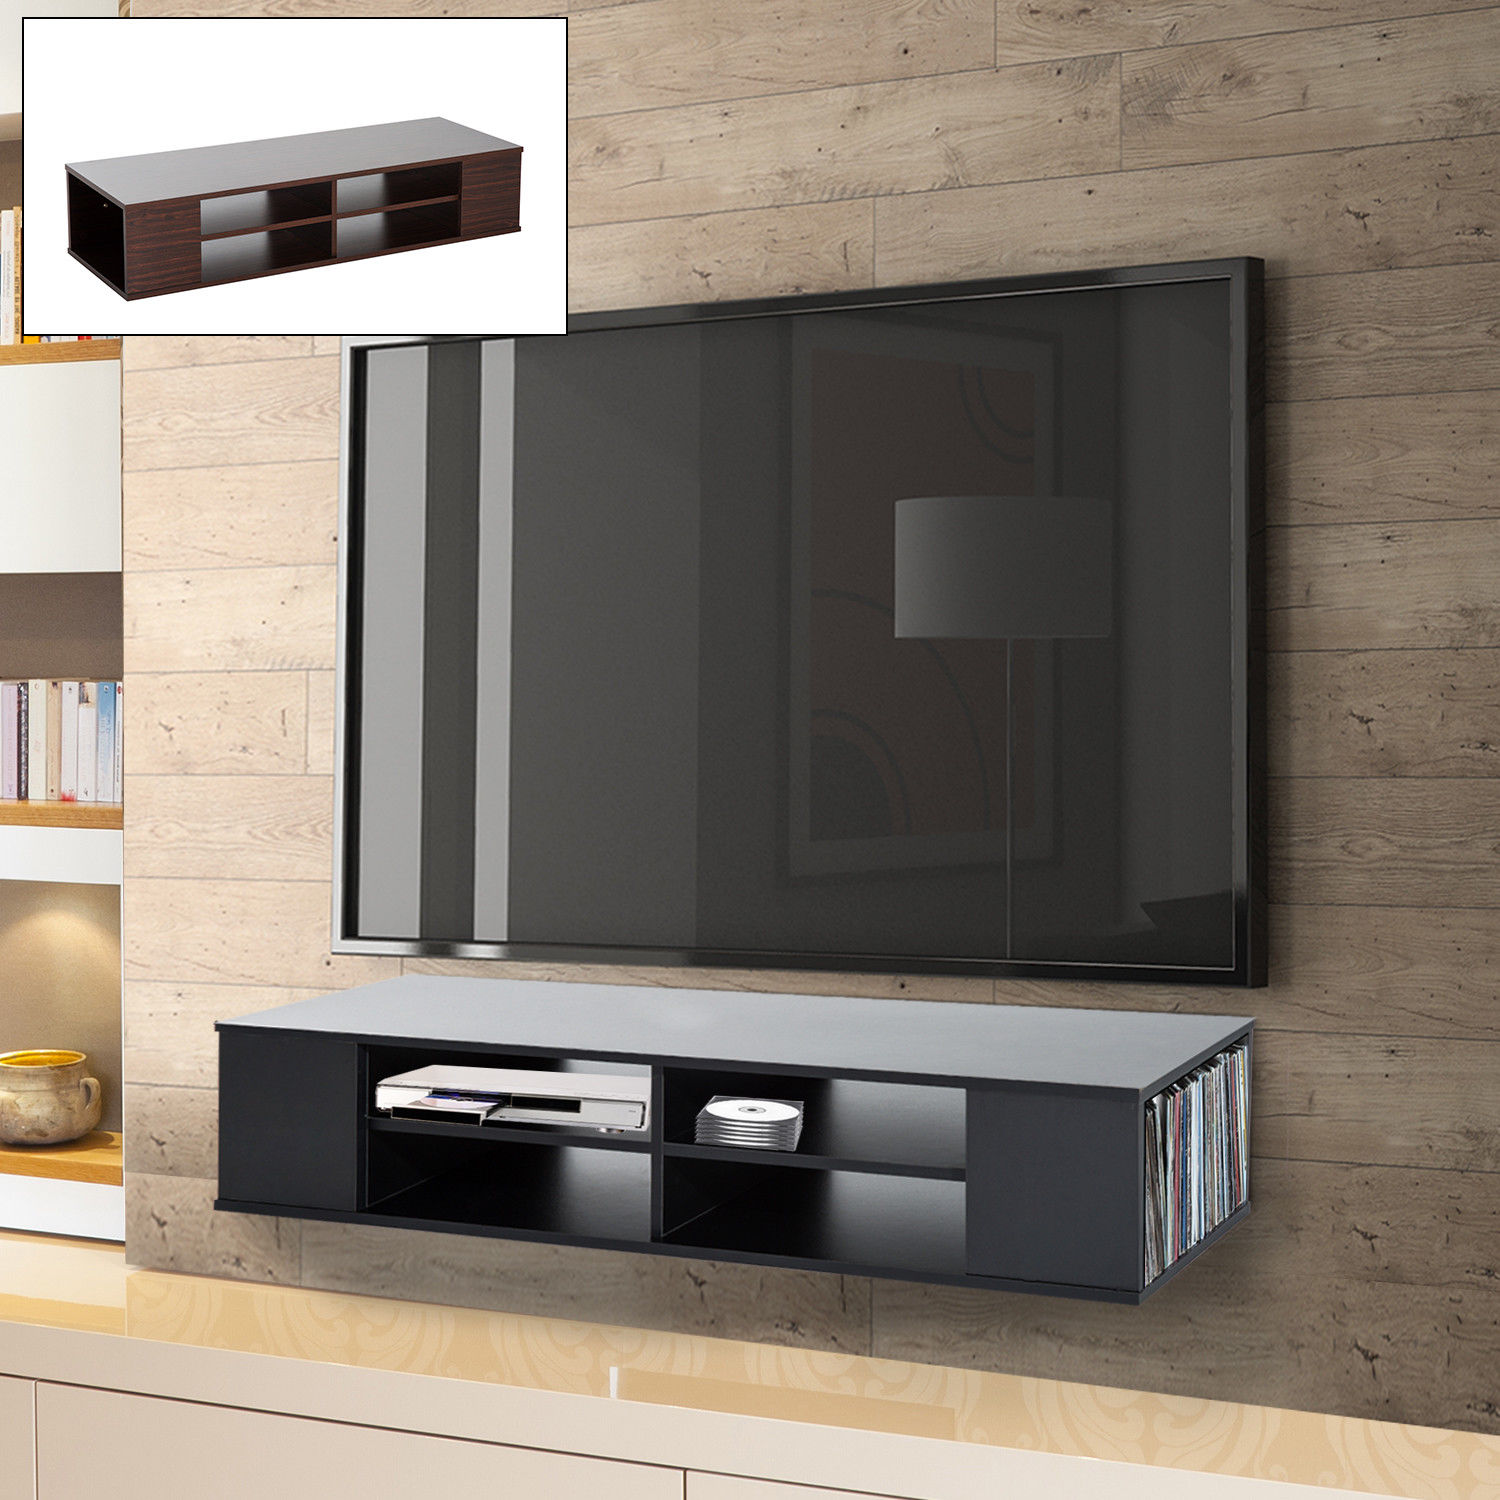 In Wall Media Cabinet Details About Modern 47 Floating Wall Mounted Tv Stand Unit Cabinet Media Center Shelf Storage